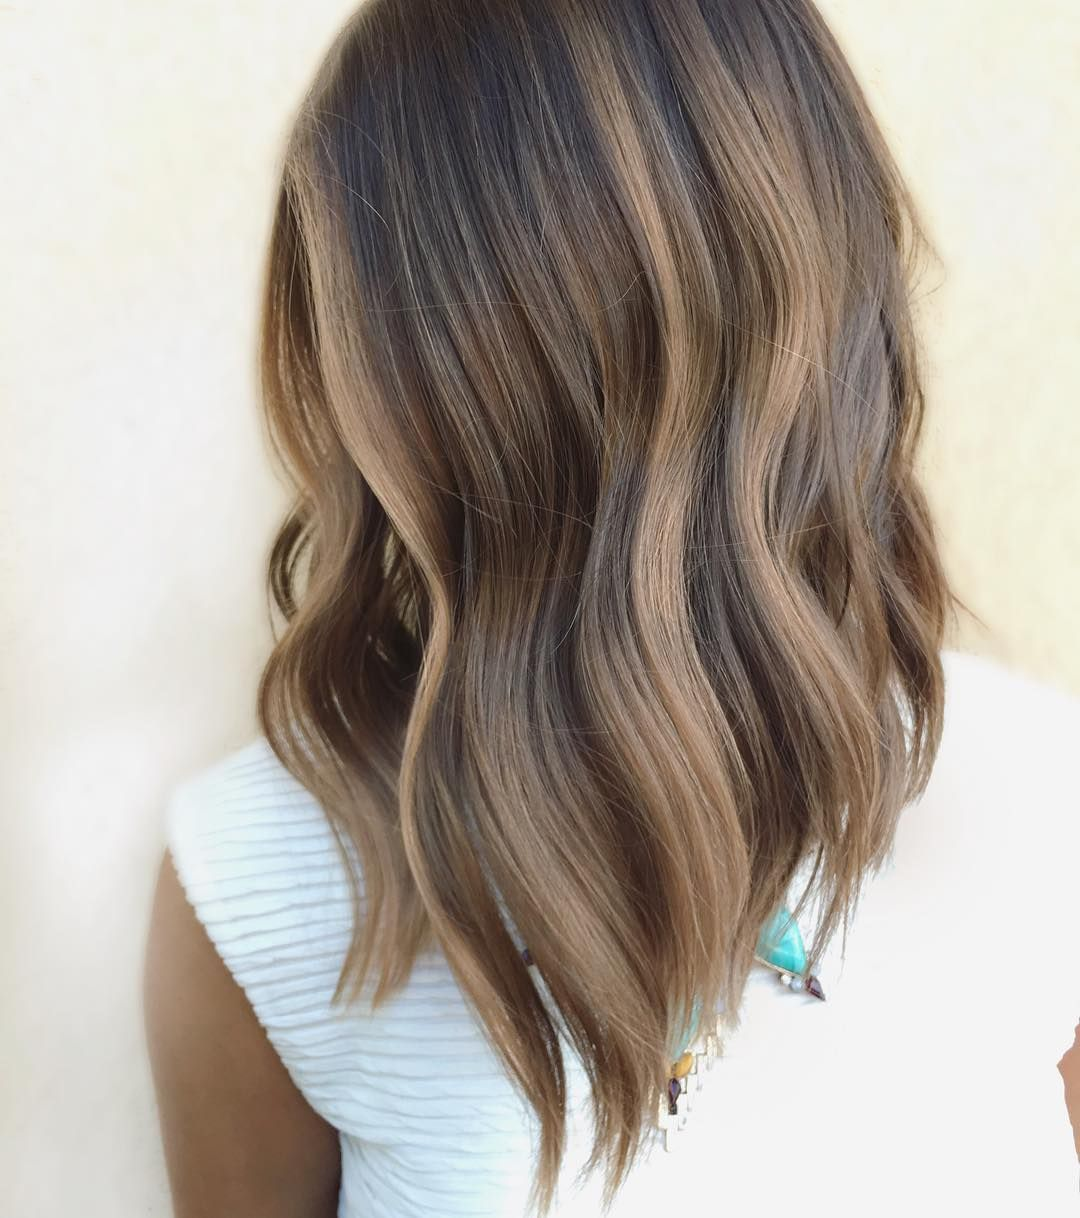 Pin by Tara Walker on Style Pinterest Create Instagram and Hair